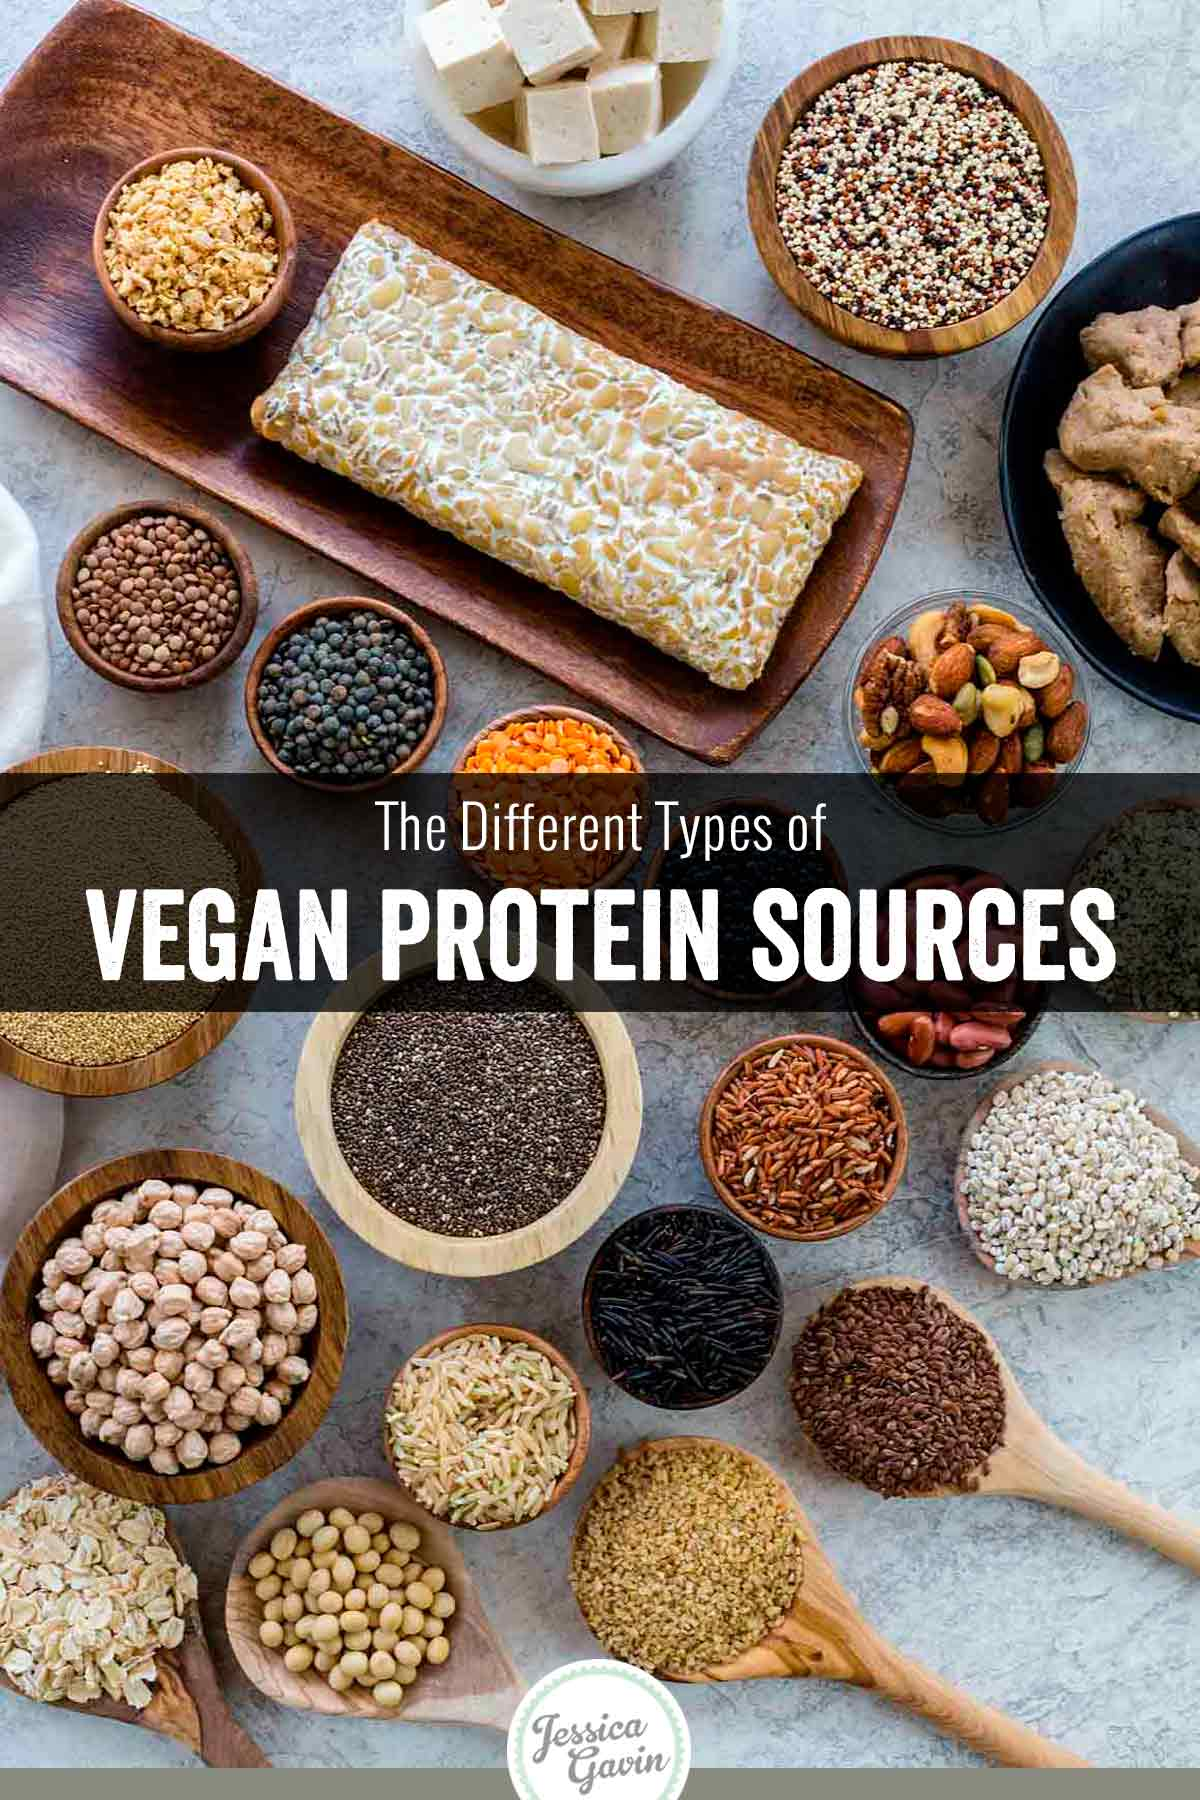 The Different Types of Vegan Protein Sources